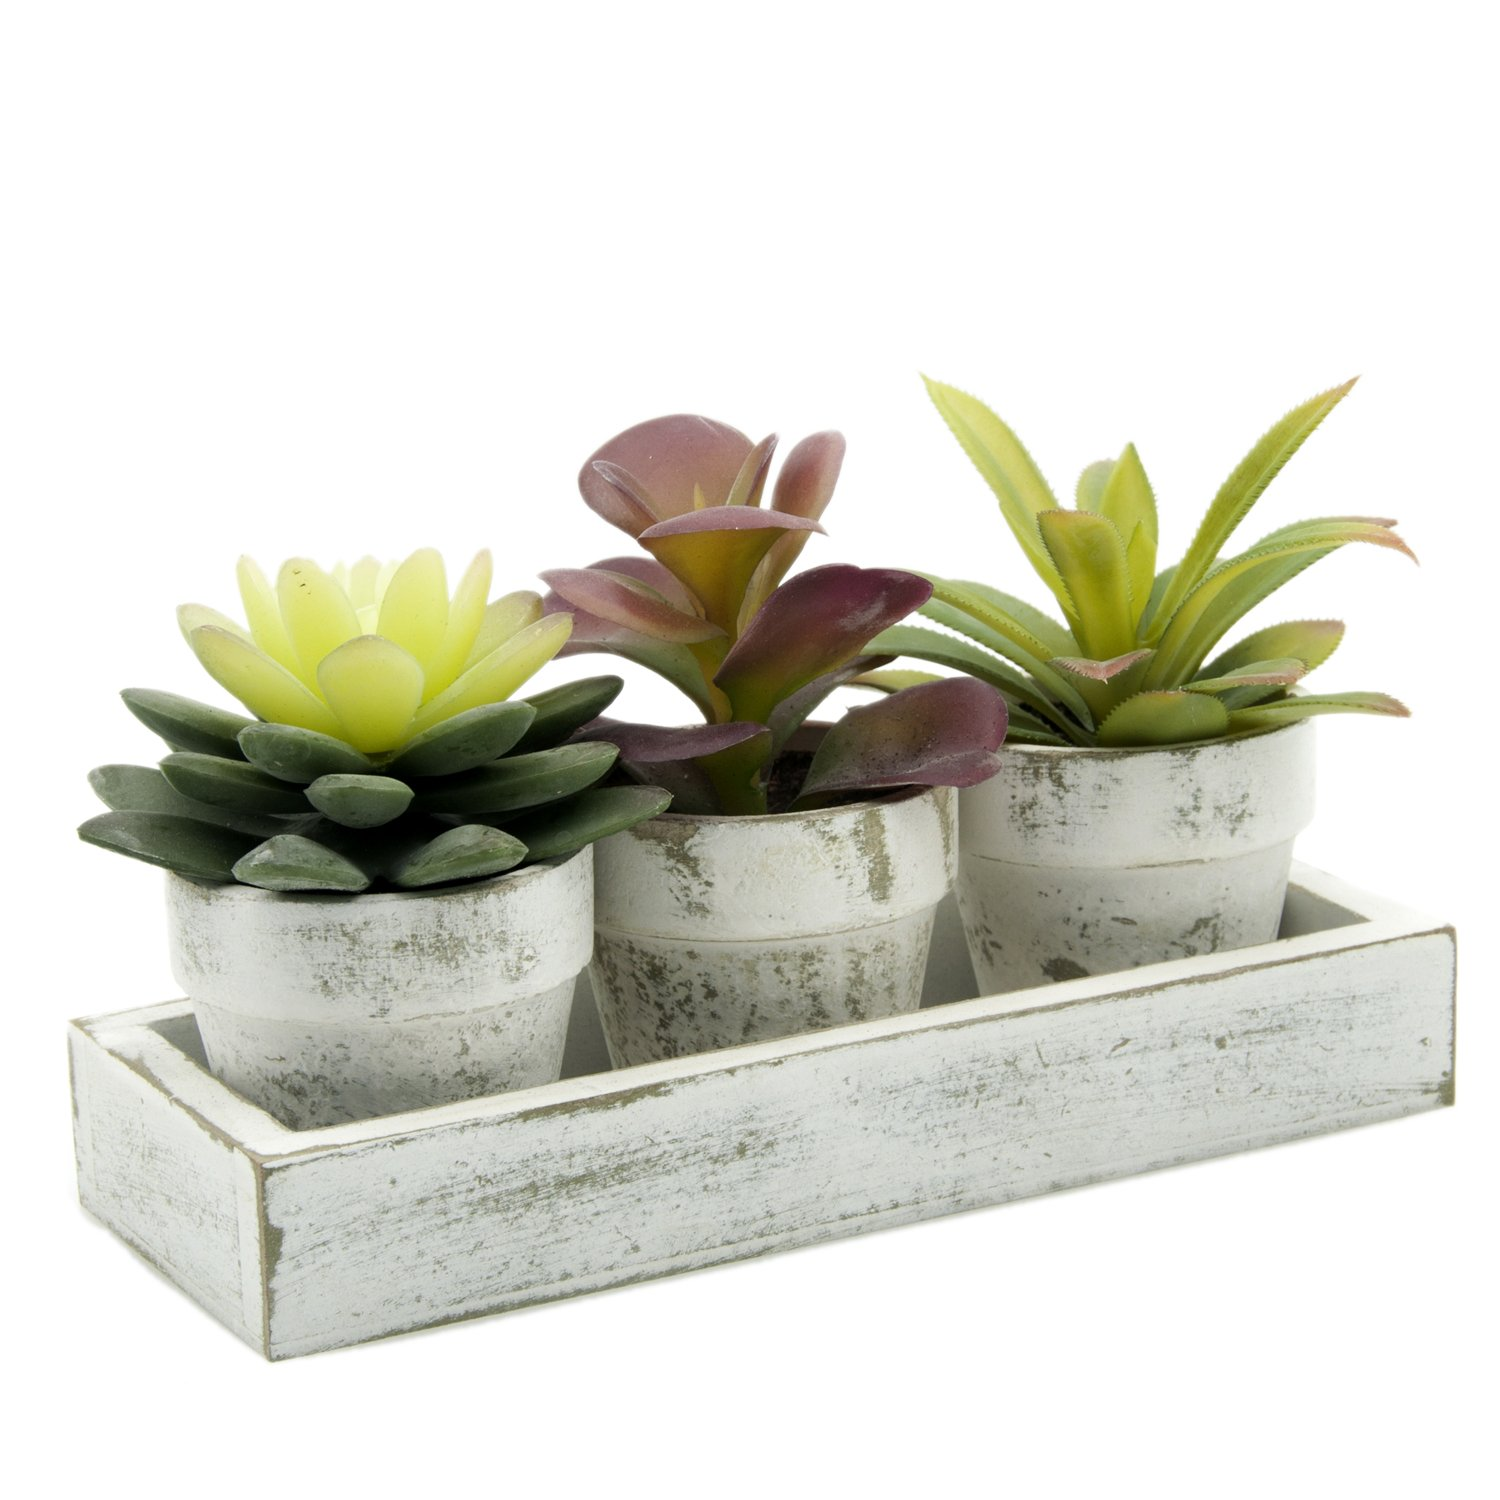 Velener Mini Artificial Succulent Plants with White Wooden Tray for Home Decor (Red, Green, Set of 3) by Velener